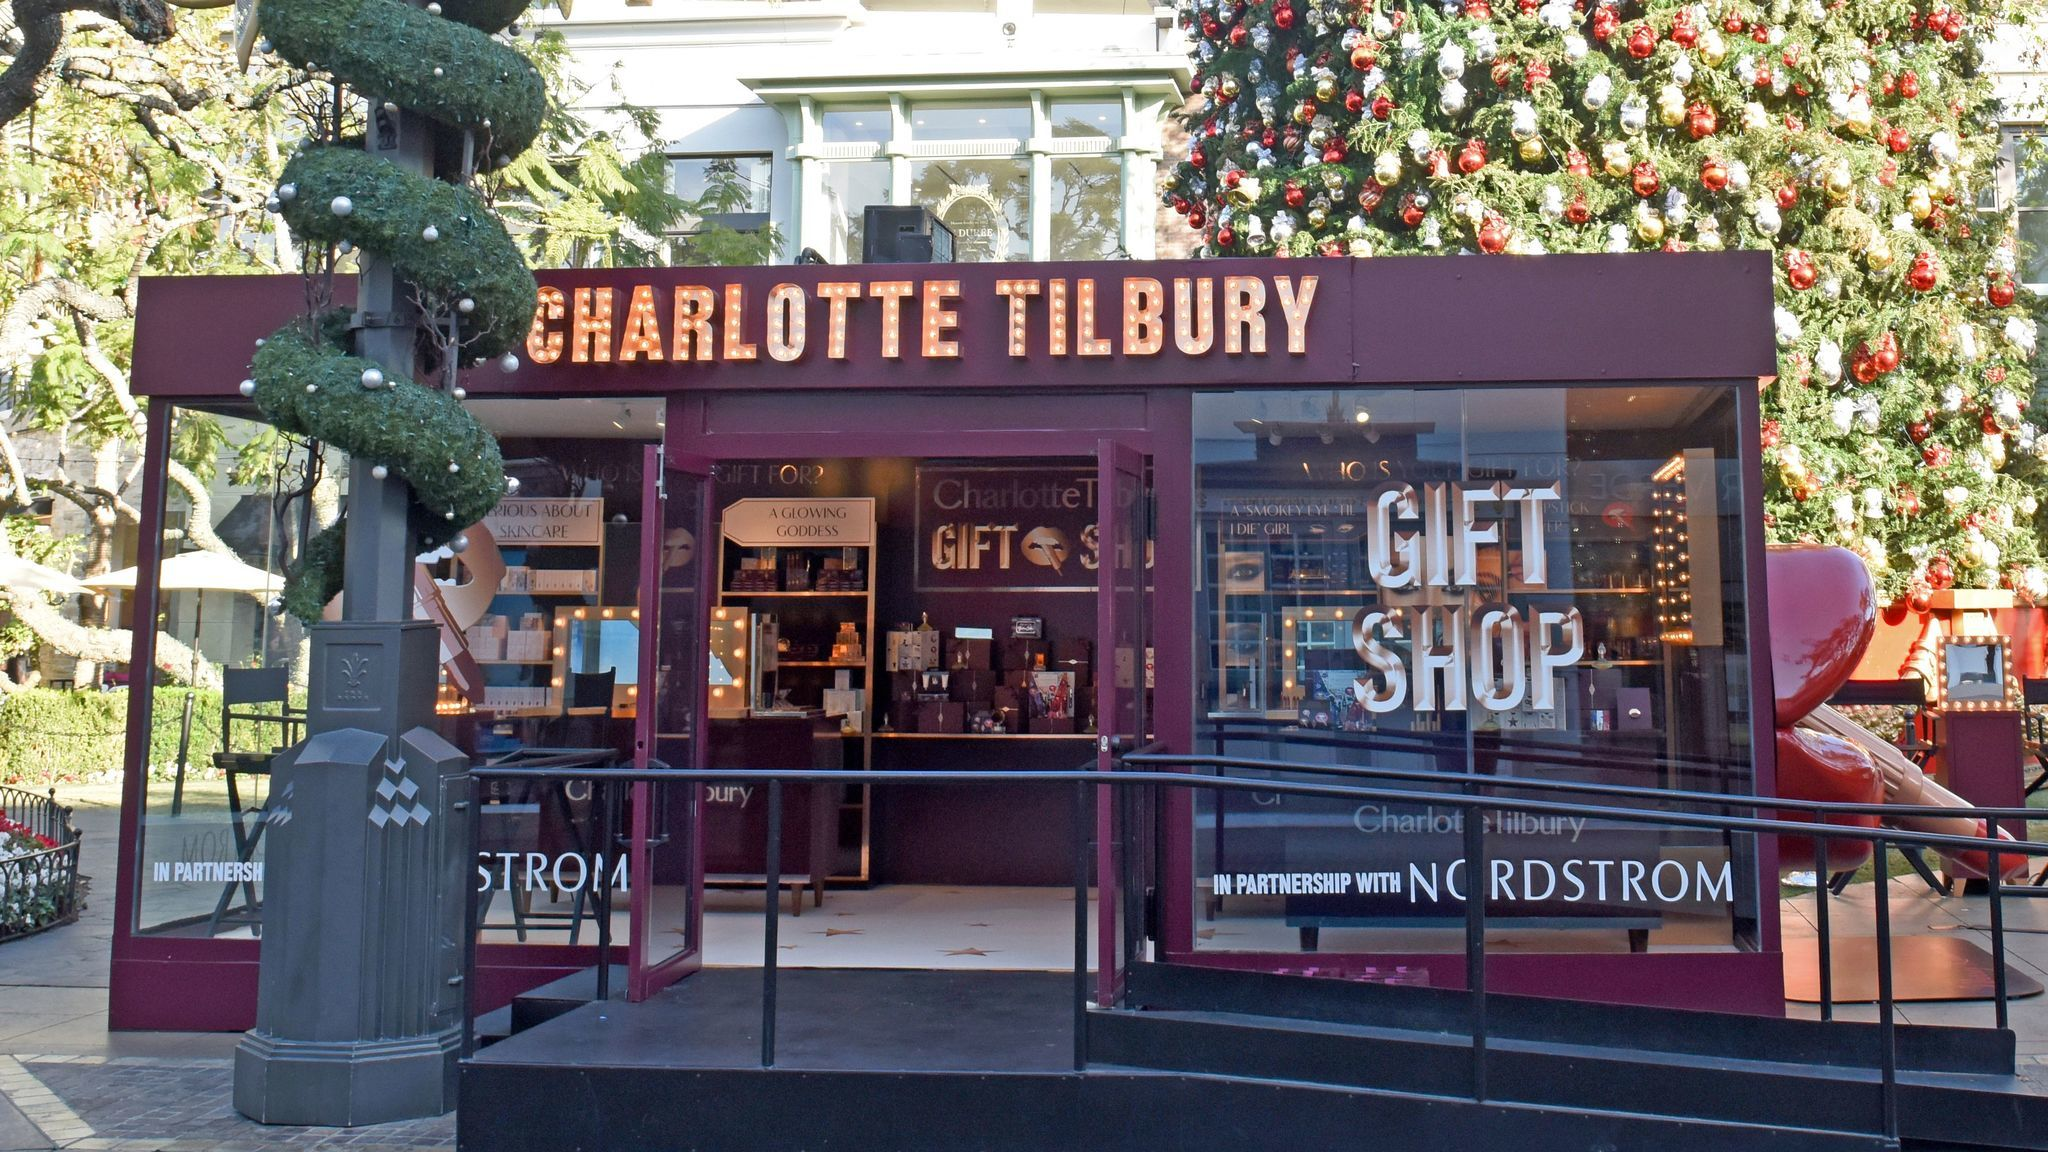 The first U.S. pop-up for popular British beauty brand Charlotte Tilbury is up through the end of the year at the Grove in Los Angeles.